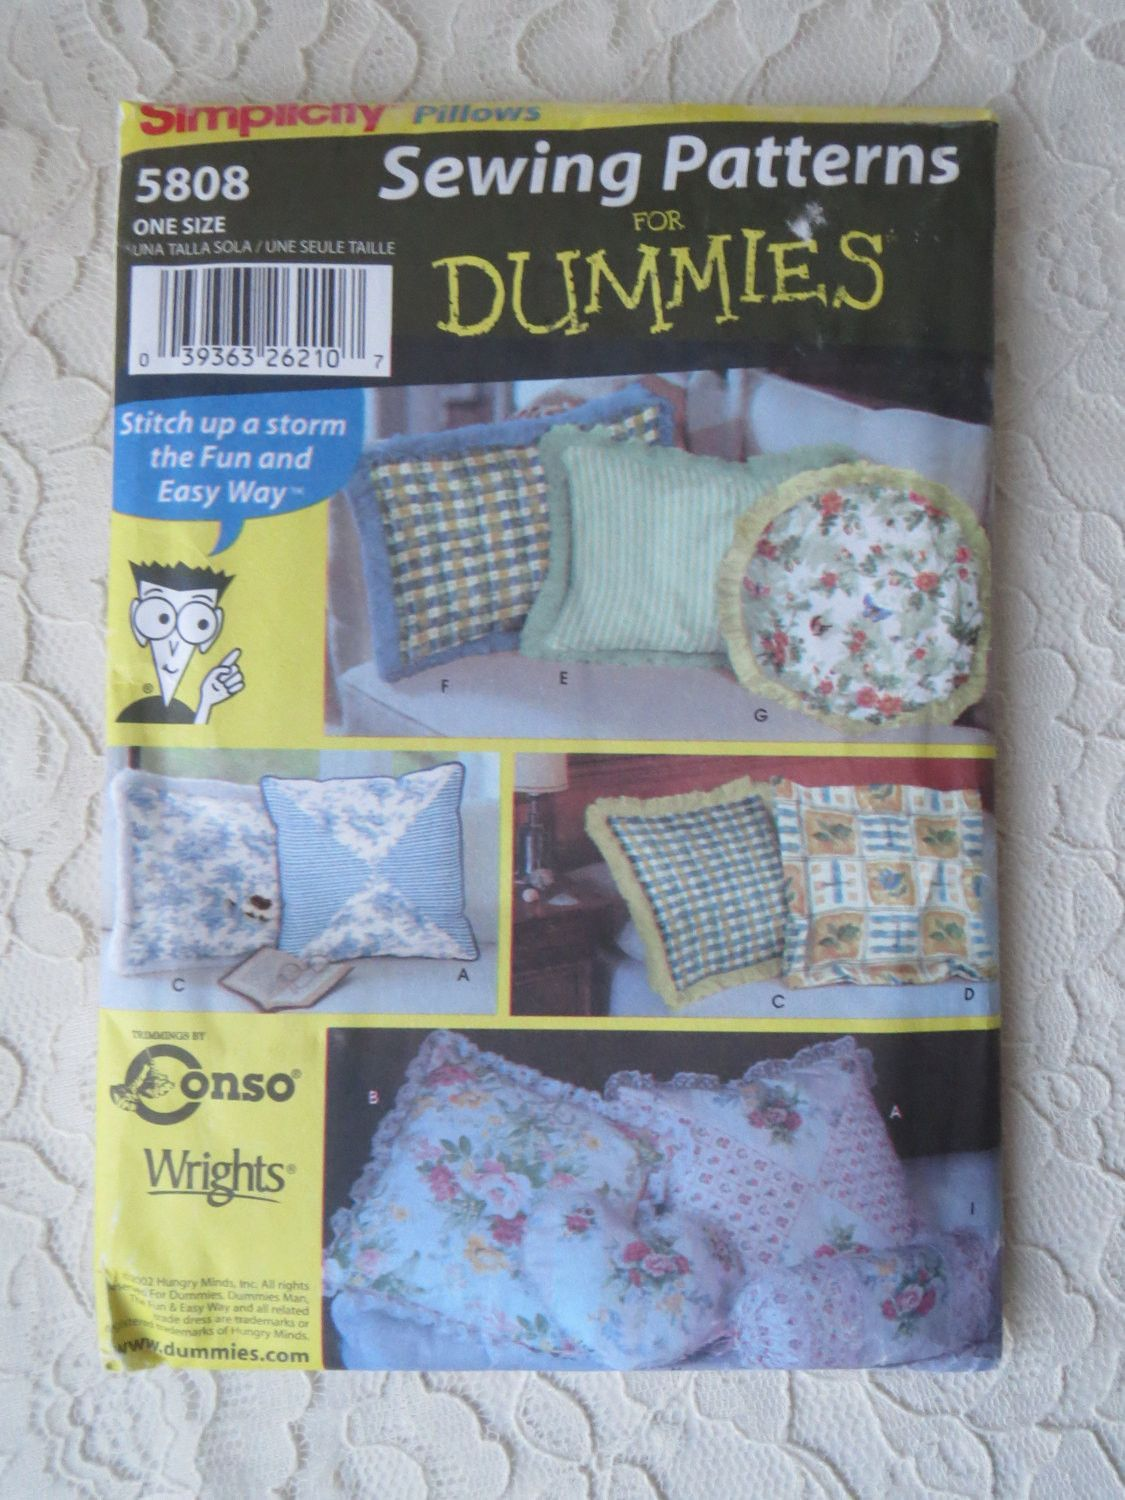 Simplicity 5808 Sewing Pattern For Dummies Pillows with Variations Round Pillow Square Pillow Heart & Simplicity 5808 Sewing Pattern For Dummies Pillows with Variations ... pillowsntoast.com